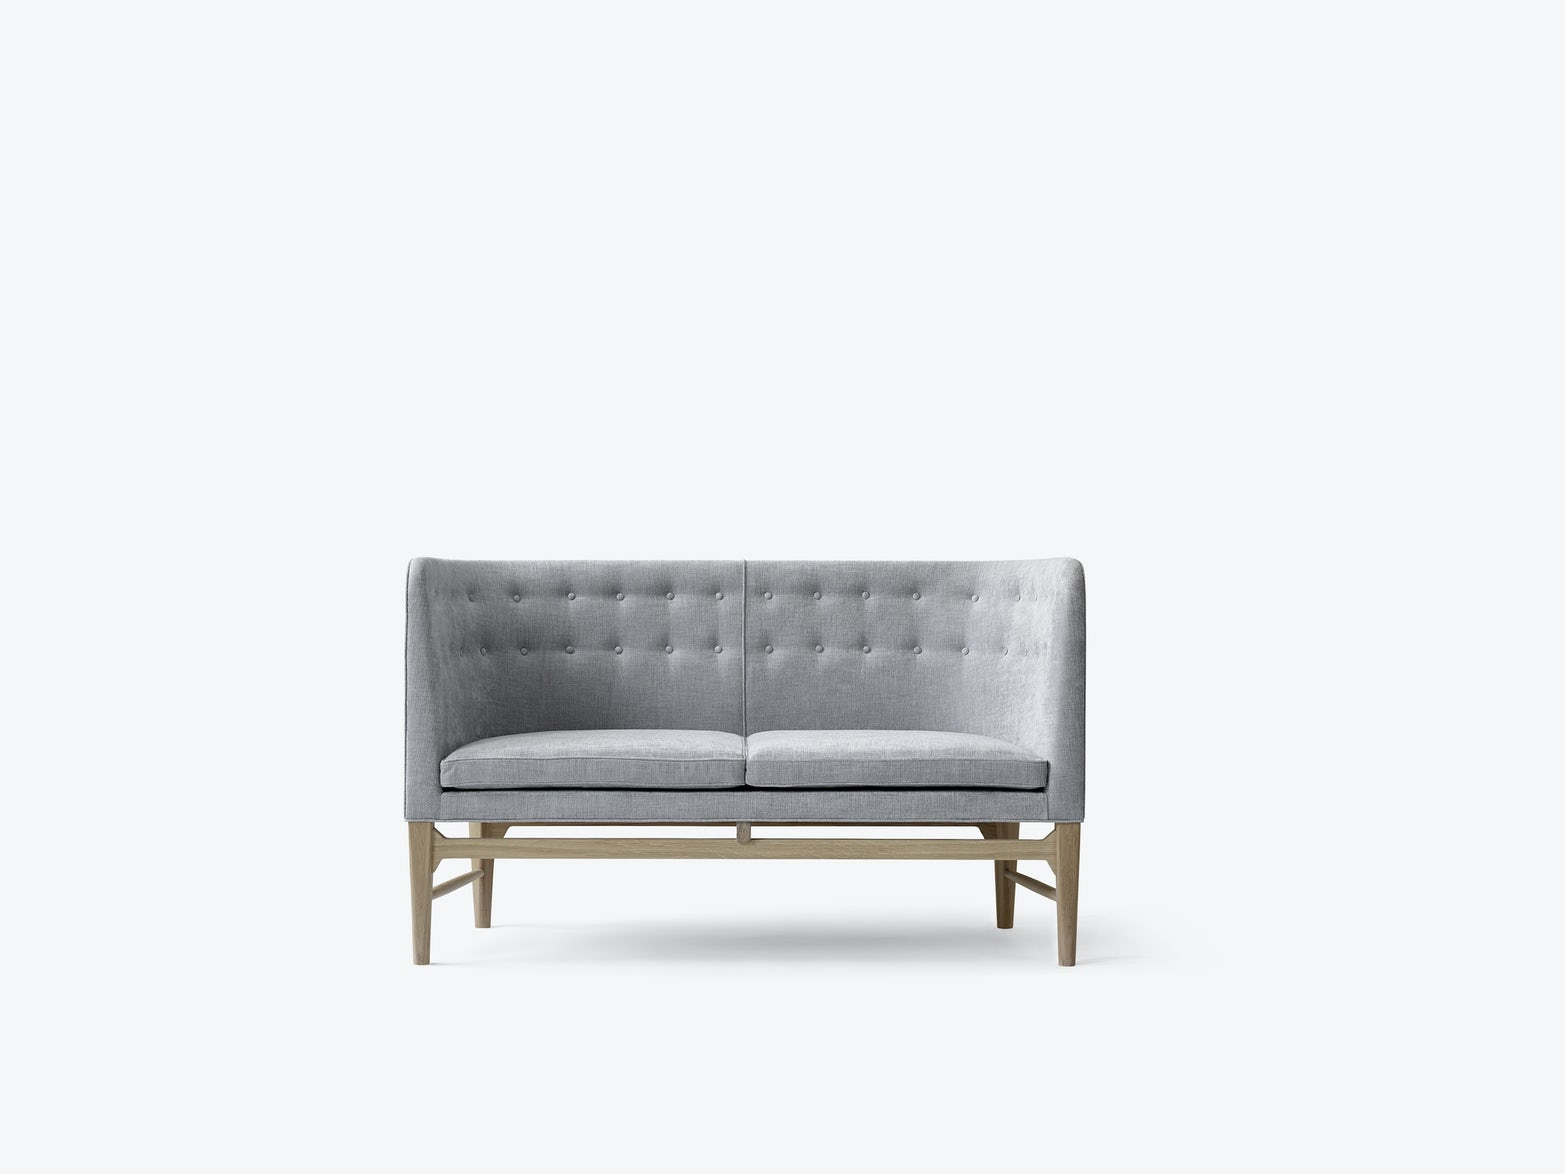 Mayor-sofa-AJ6-Arne-Jacobsen-Flemming-Lassen-andtradition-6